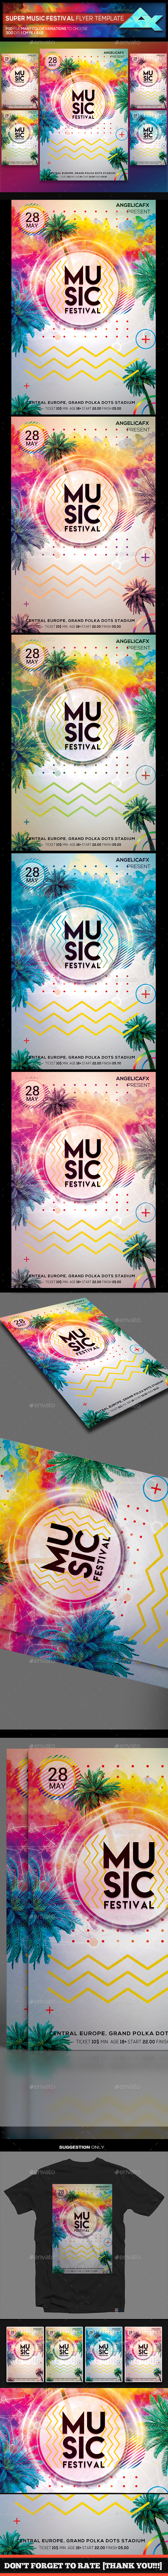 Super Music Festival Flyer Template - Flyers Print Templates